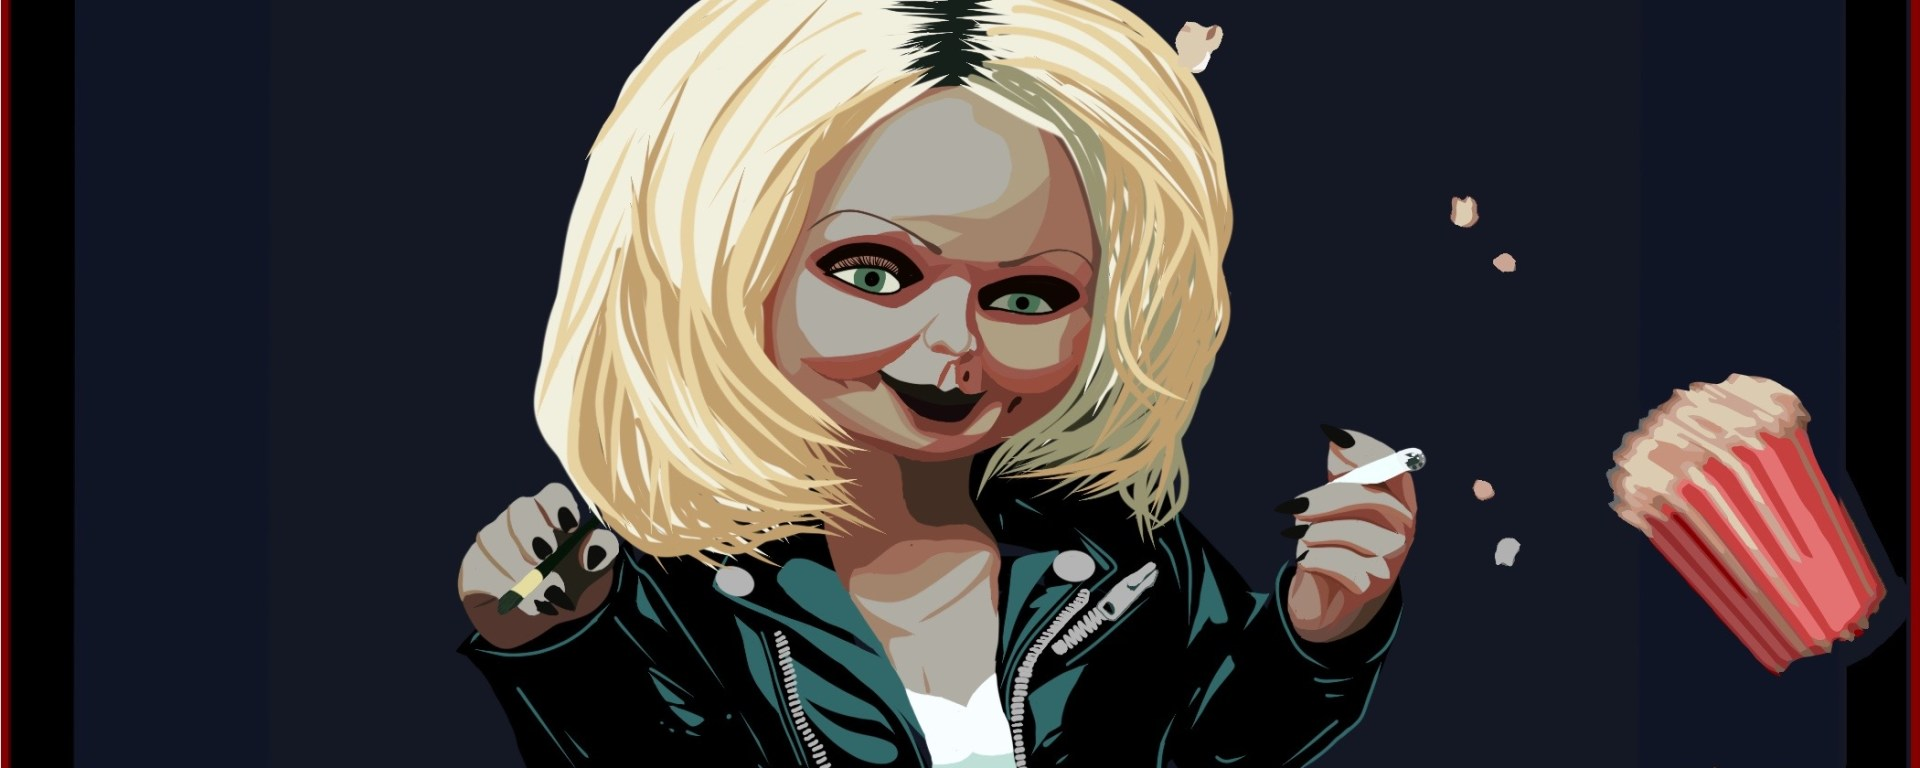 A scene from the Bride of Chucky with an illustration of a theater.